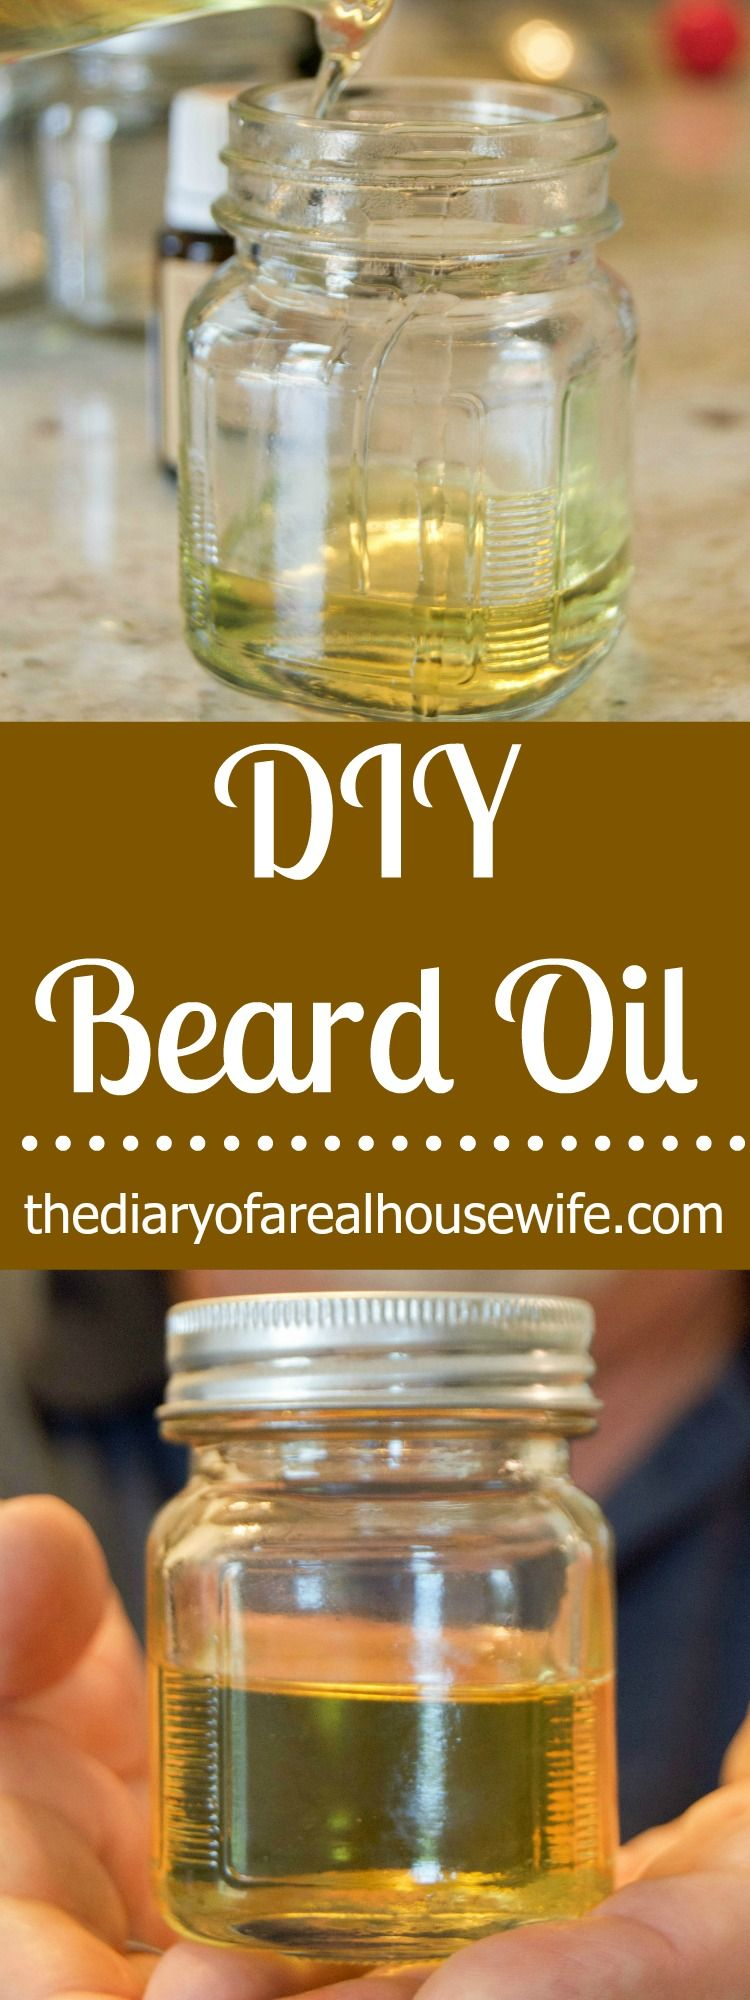 Easy DIY Beard Oil. Makes the perfect gift! Diy beard